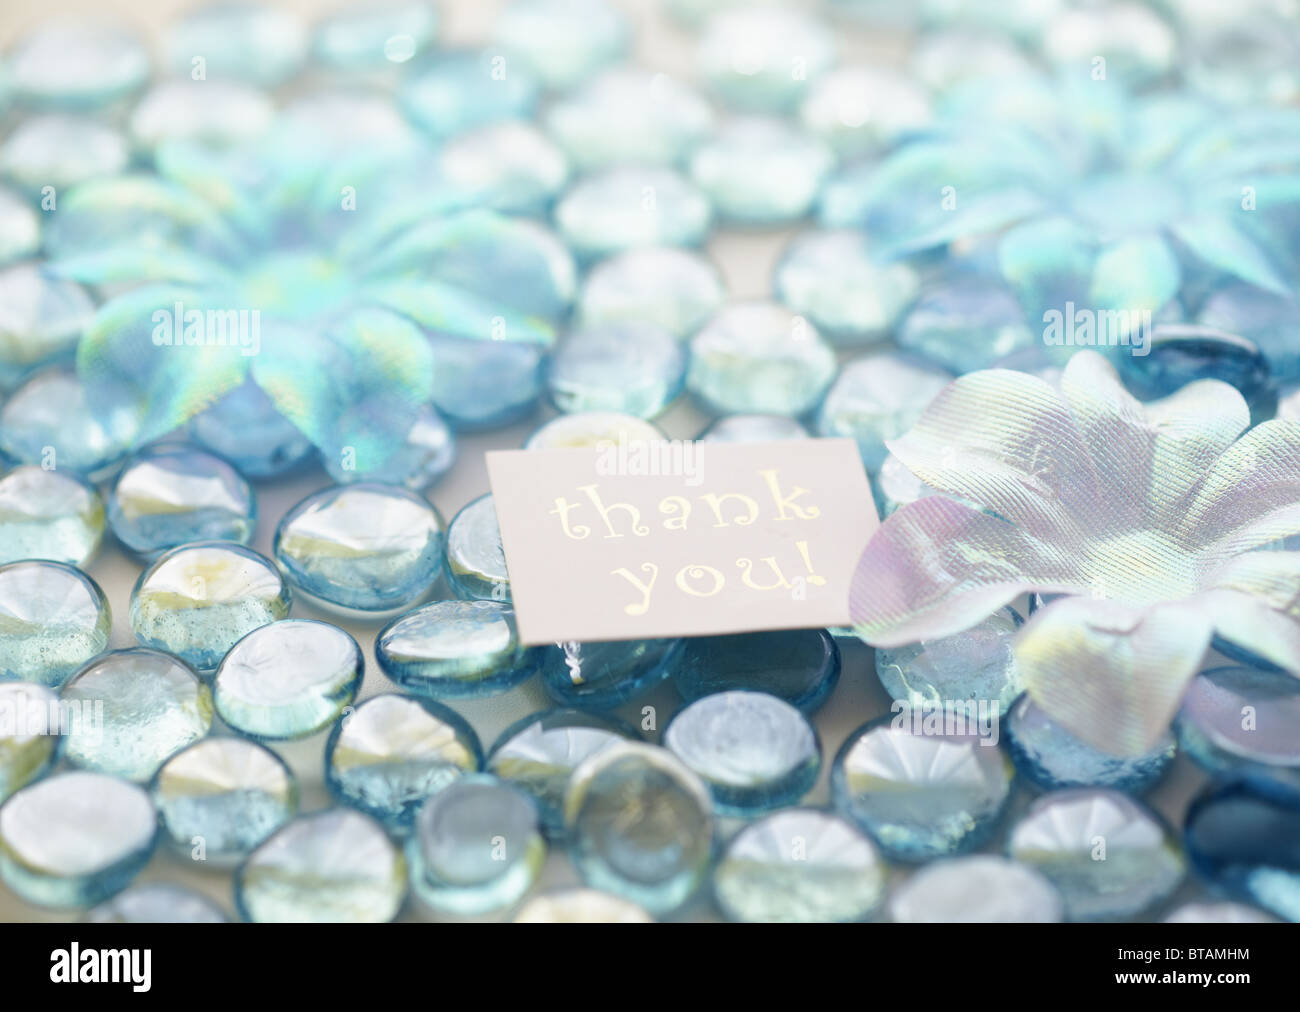 Galets de verre et carte message Photo Stock